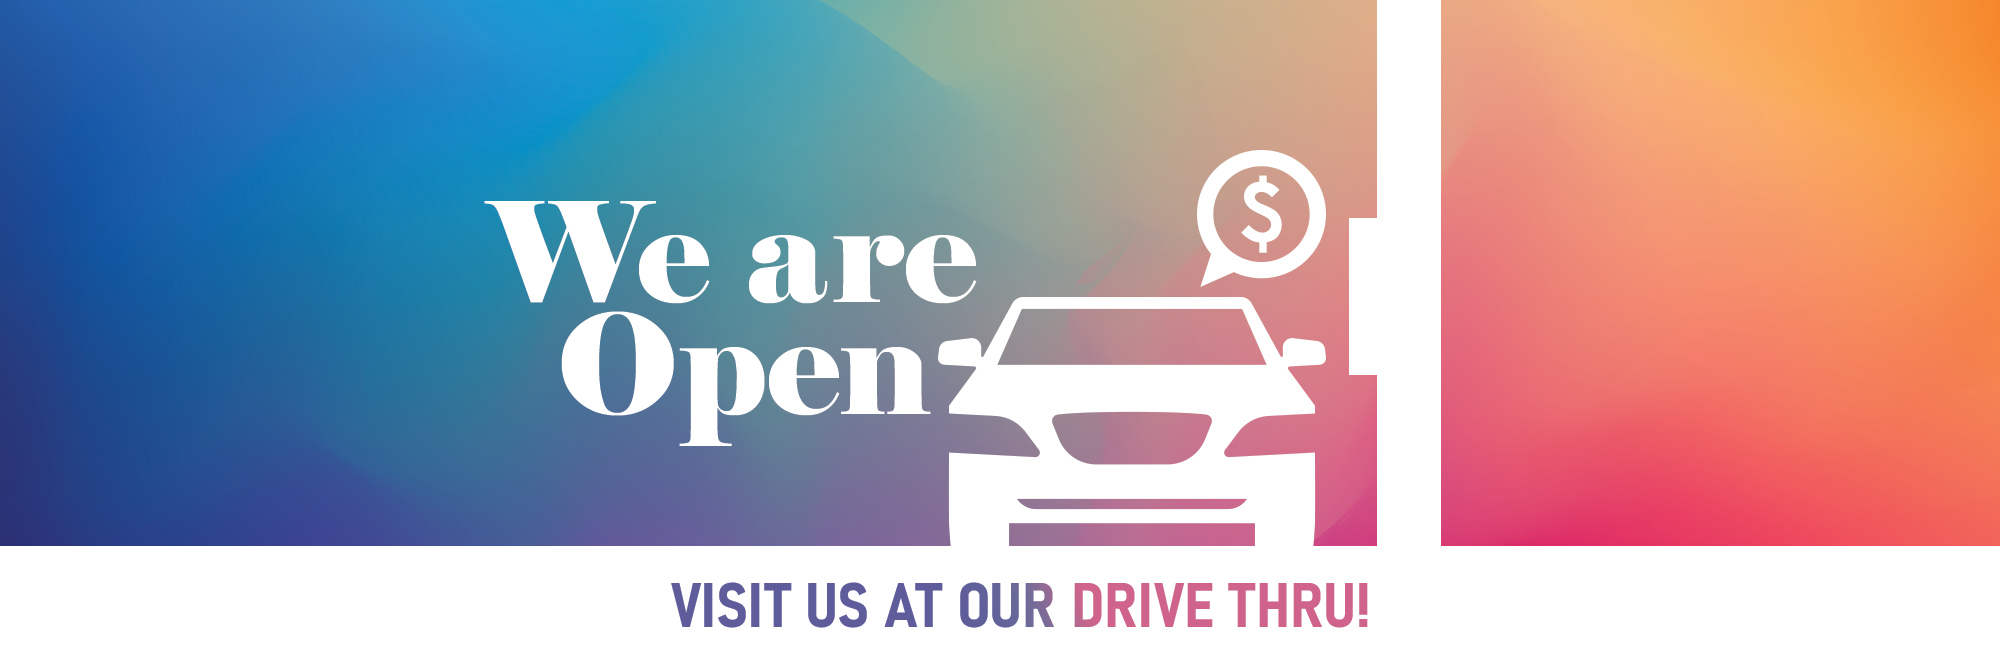 We Are Open Drive Thru Banner